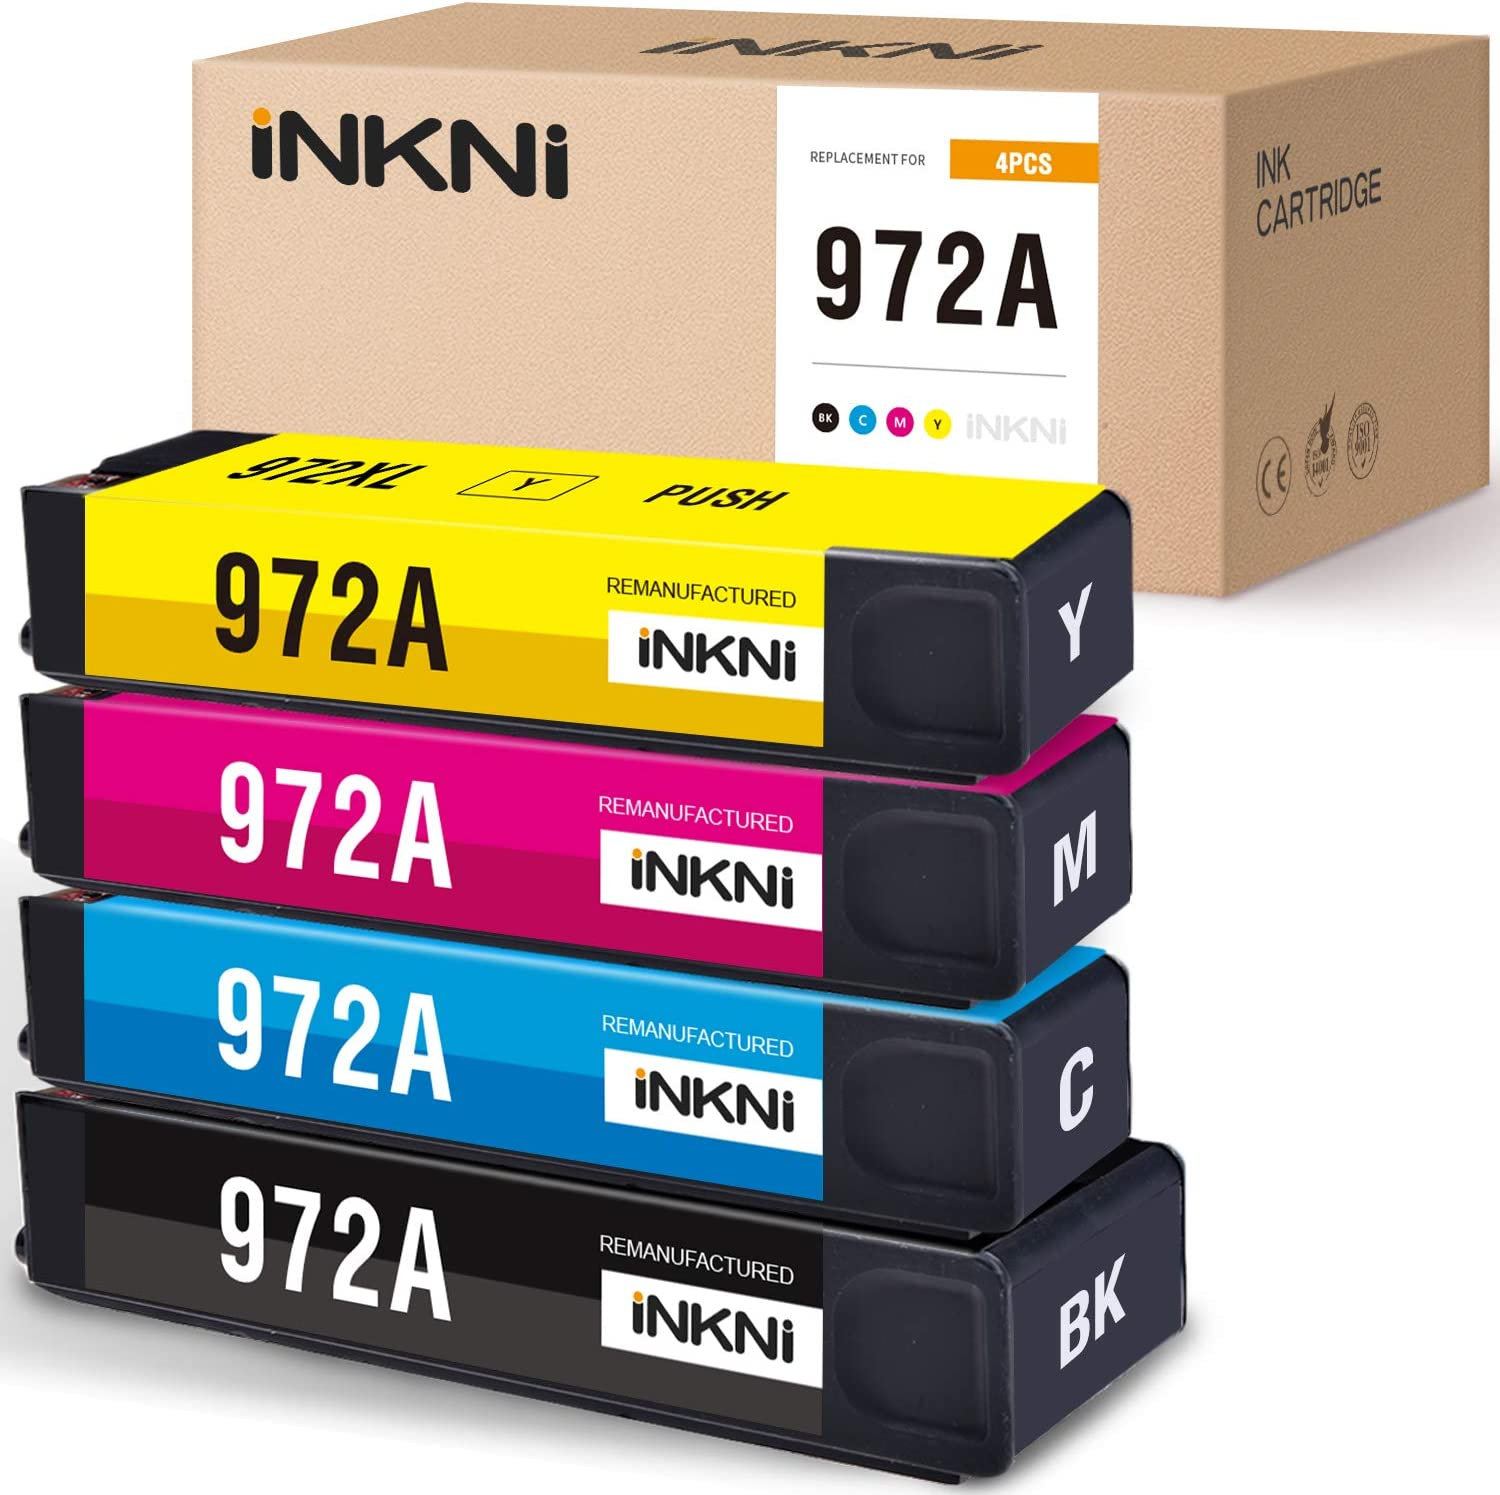 INKNI Remanufactured Ink Cartridge Replacement for HP 972A 972X for PageWide Pro MFP 577dw 477dw 577z 477dn 452dw 452dn 377dw P57750dw 552dw Printer (Black Cyan Magenta Yellow, 4-Pack)